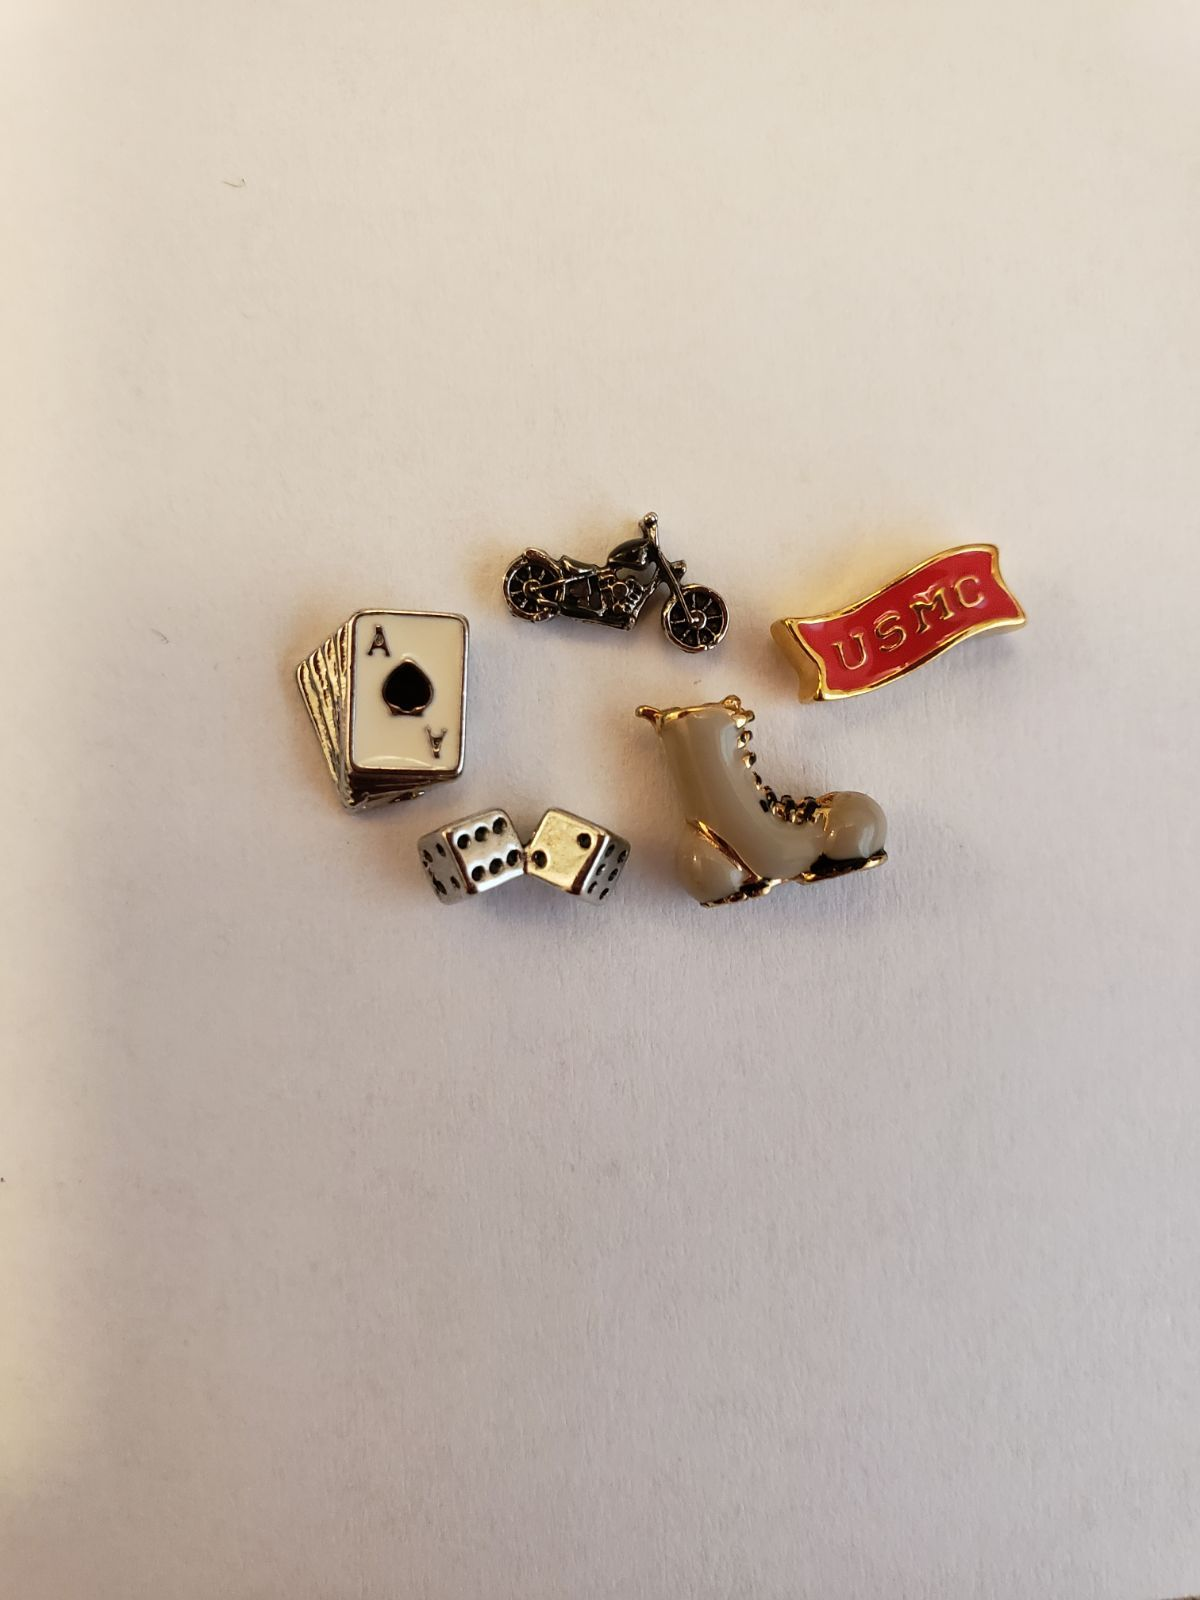 Authentic Origami Owl Dice Charm New